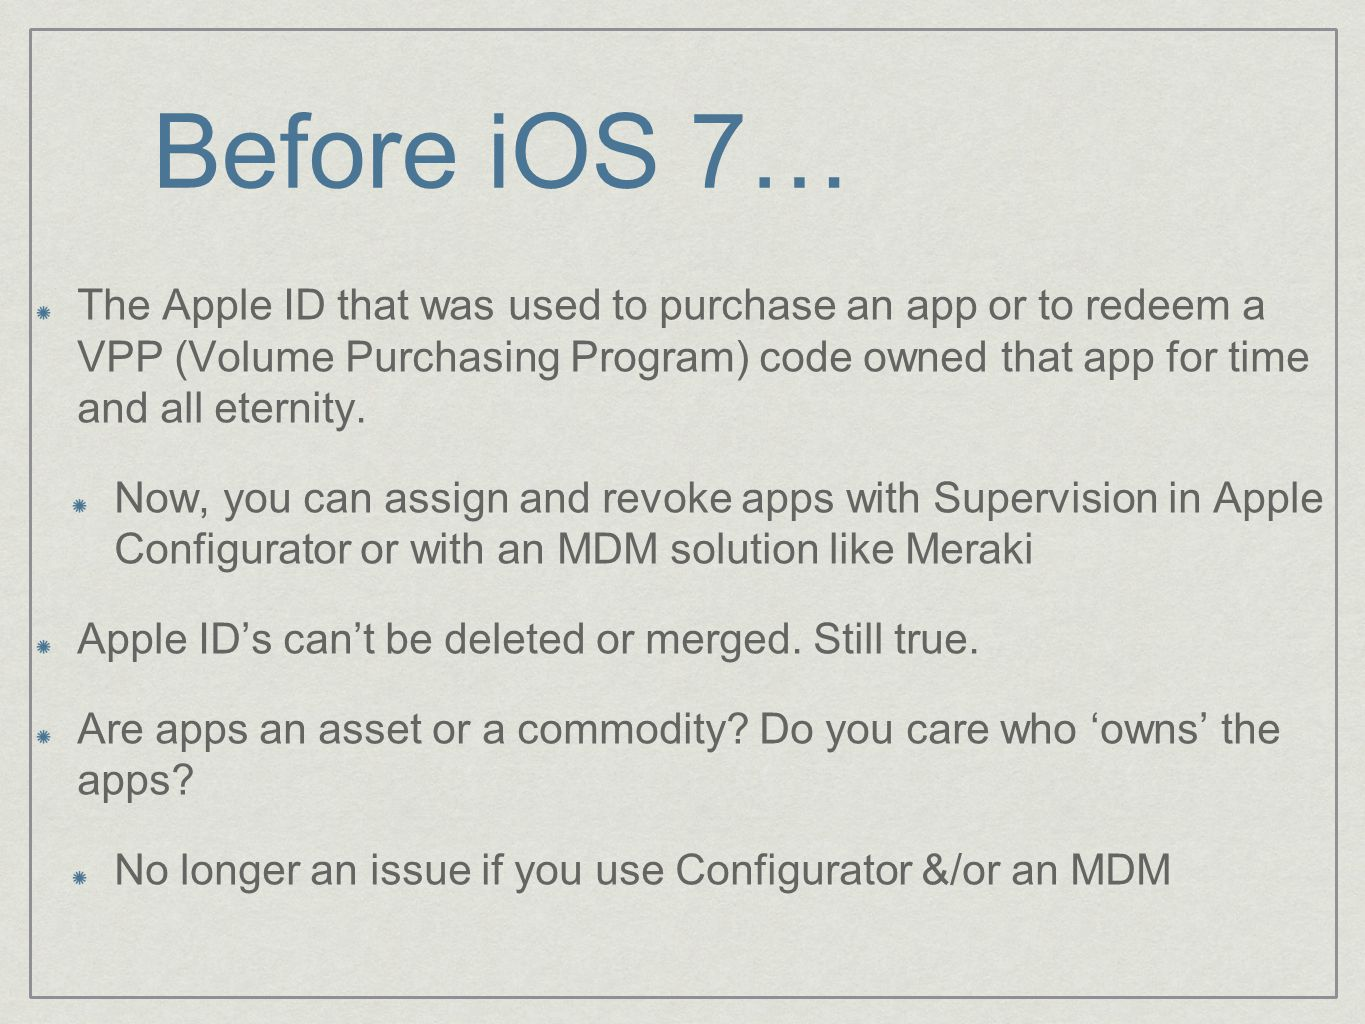 Before iOS 7… The Apple ID that was used to purchase an app or to redeem a VPP (Volume Purchasing Program) code owned that app for time and all eternity.